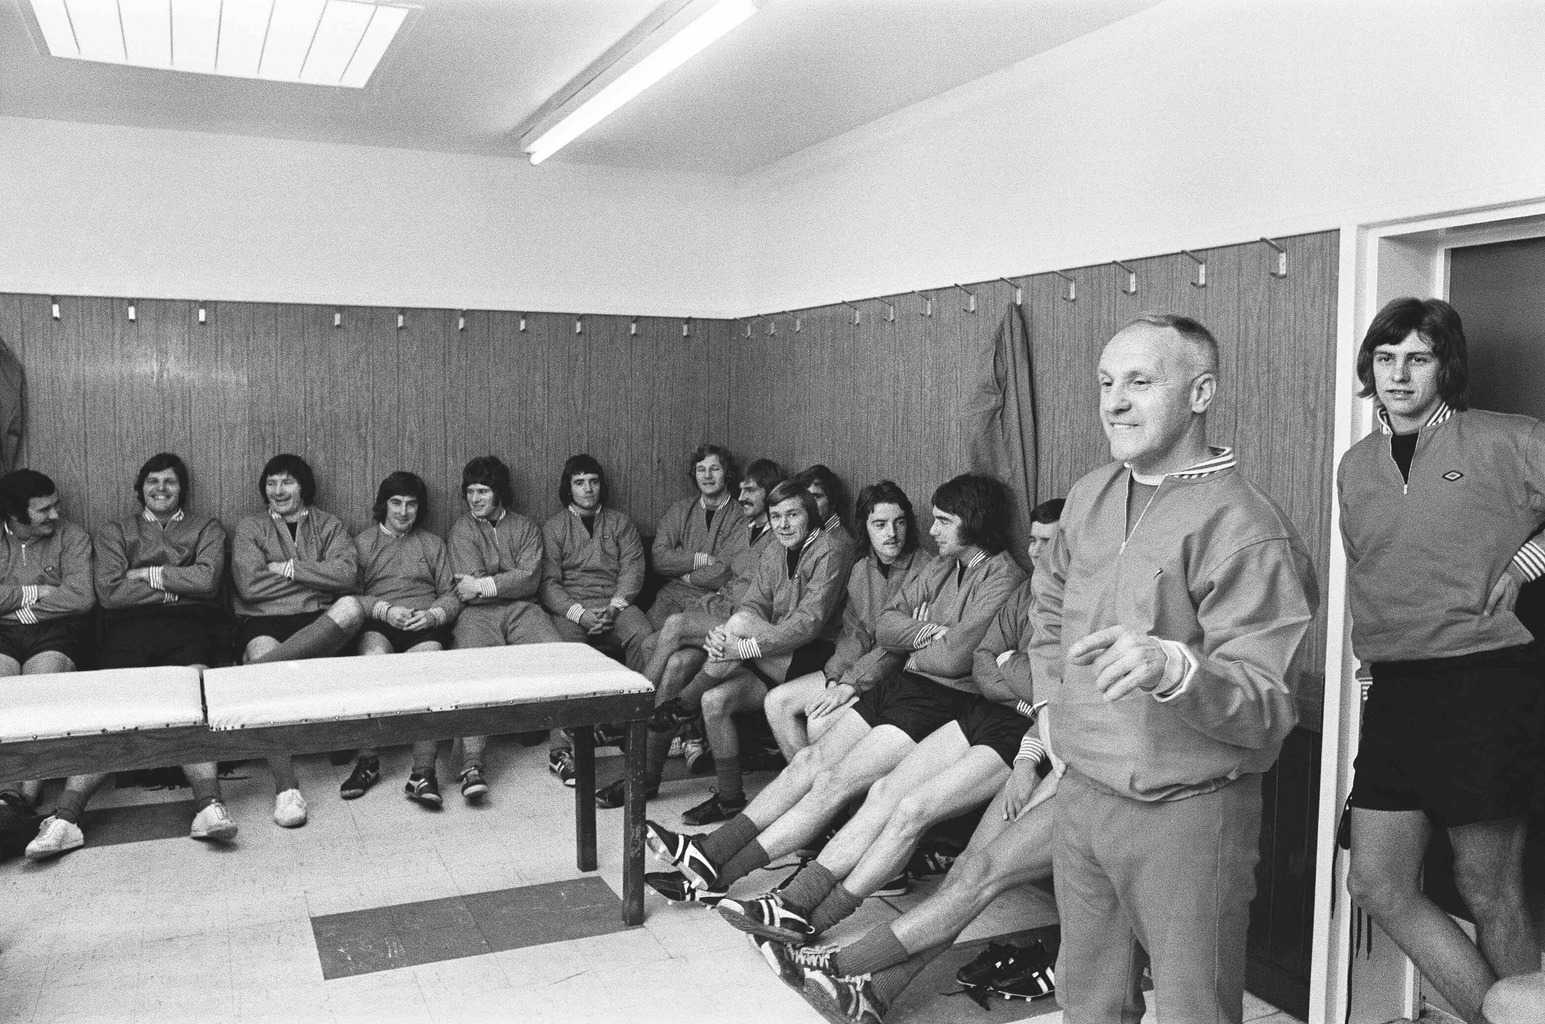 Bill Shankly addresses the Liverpool players in the dressing room